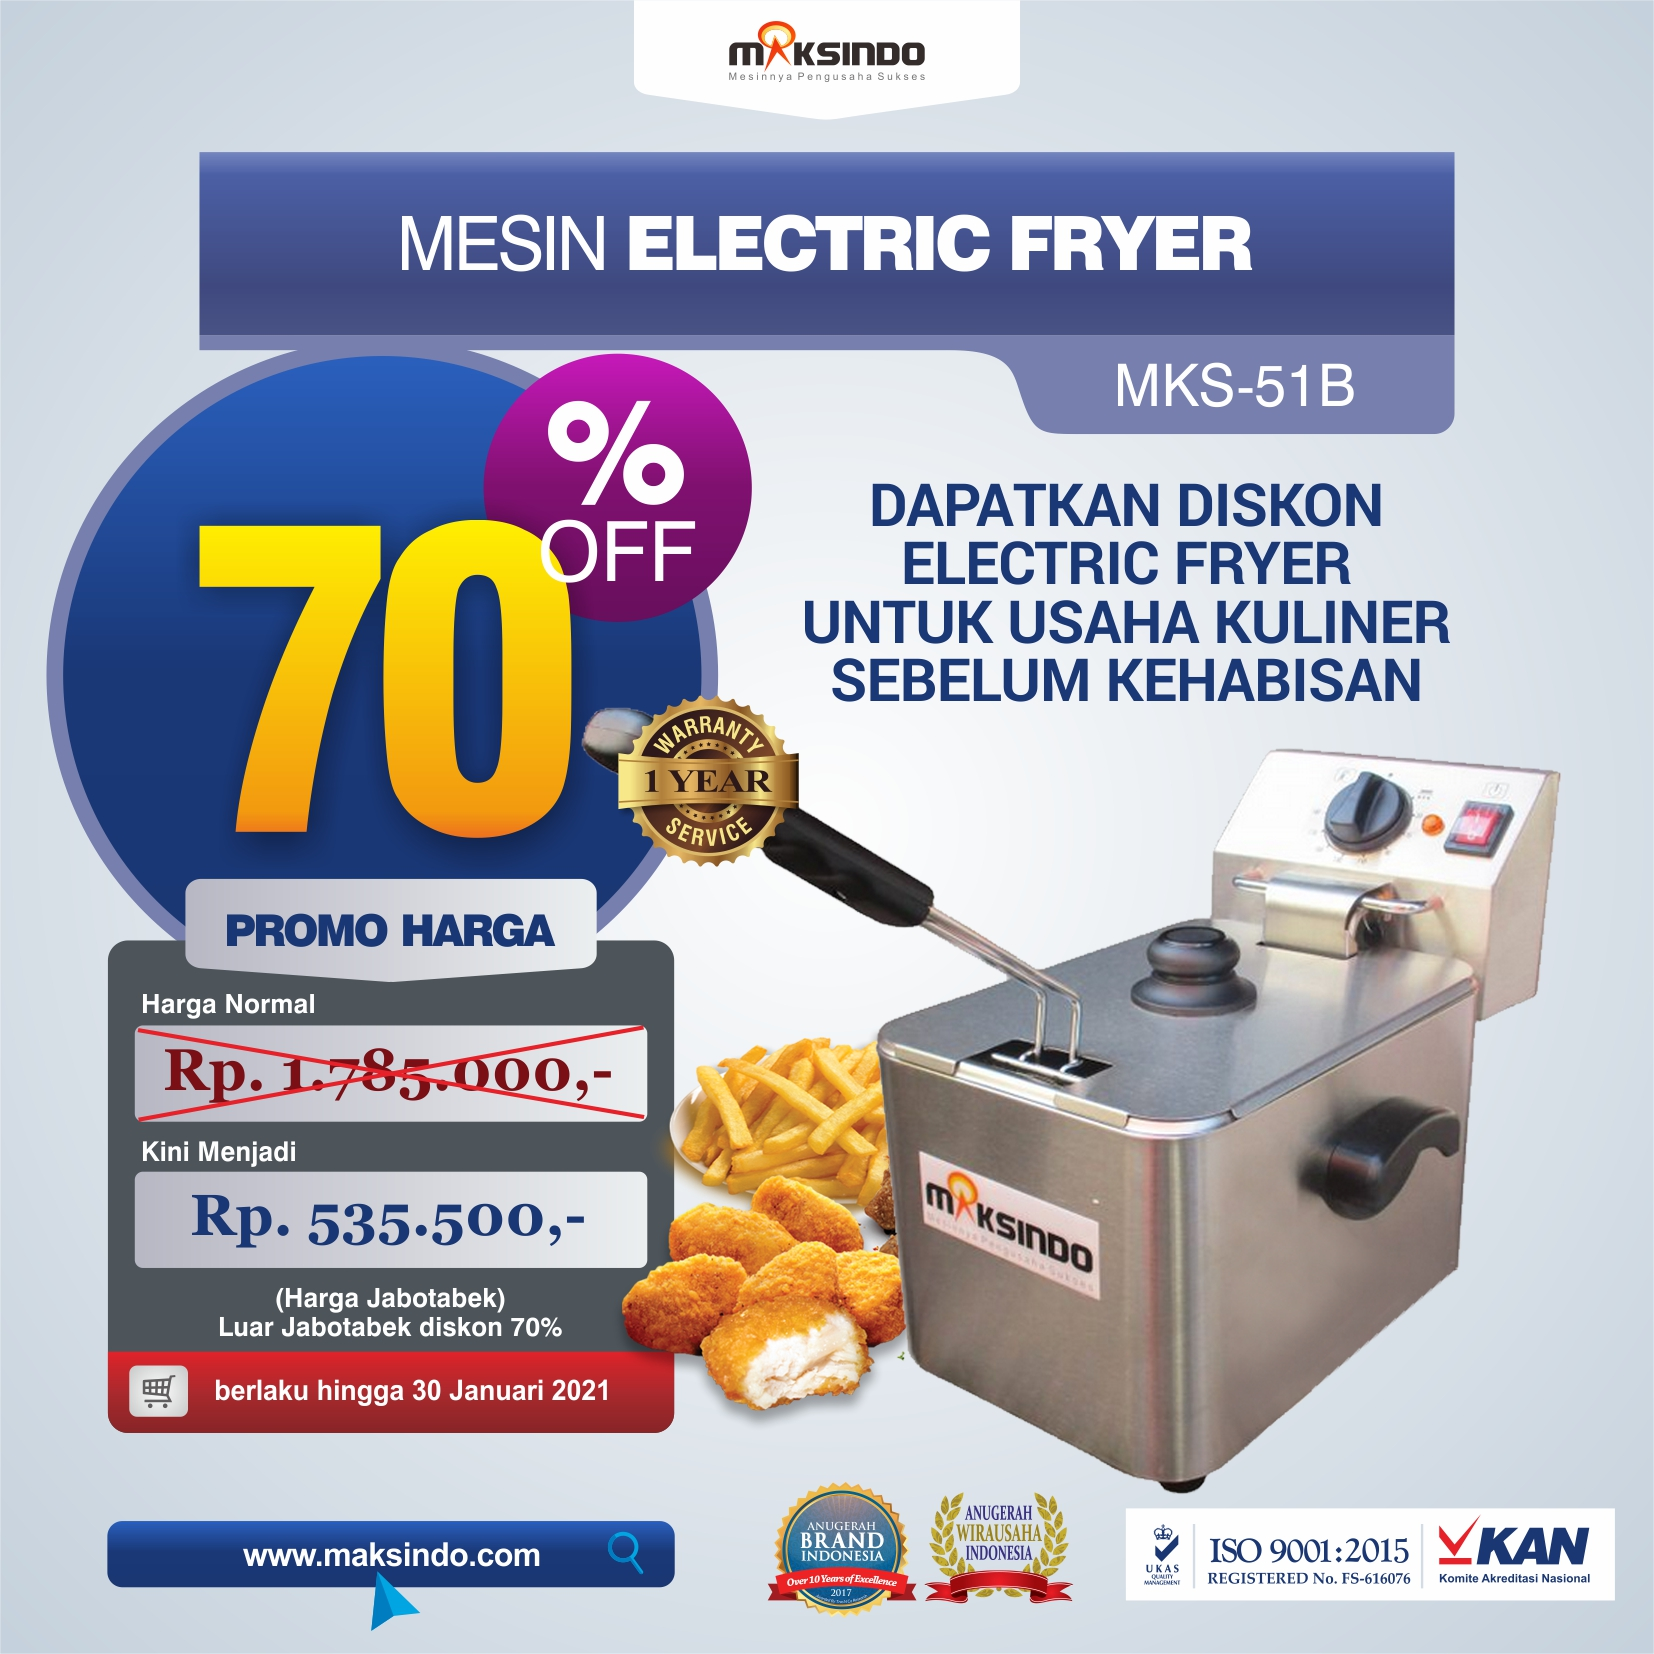 Jual Mesin Electric Fryer MKS-51B di Medan